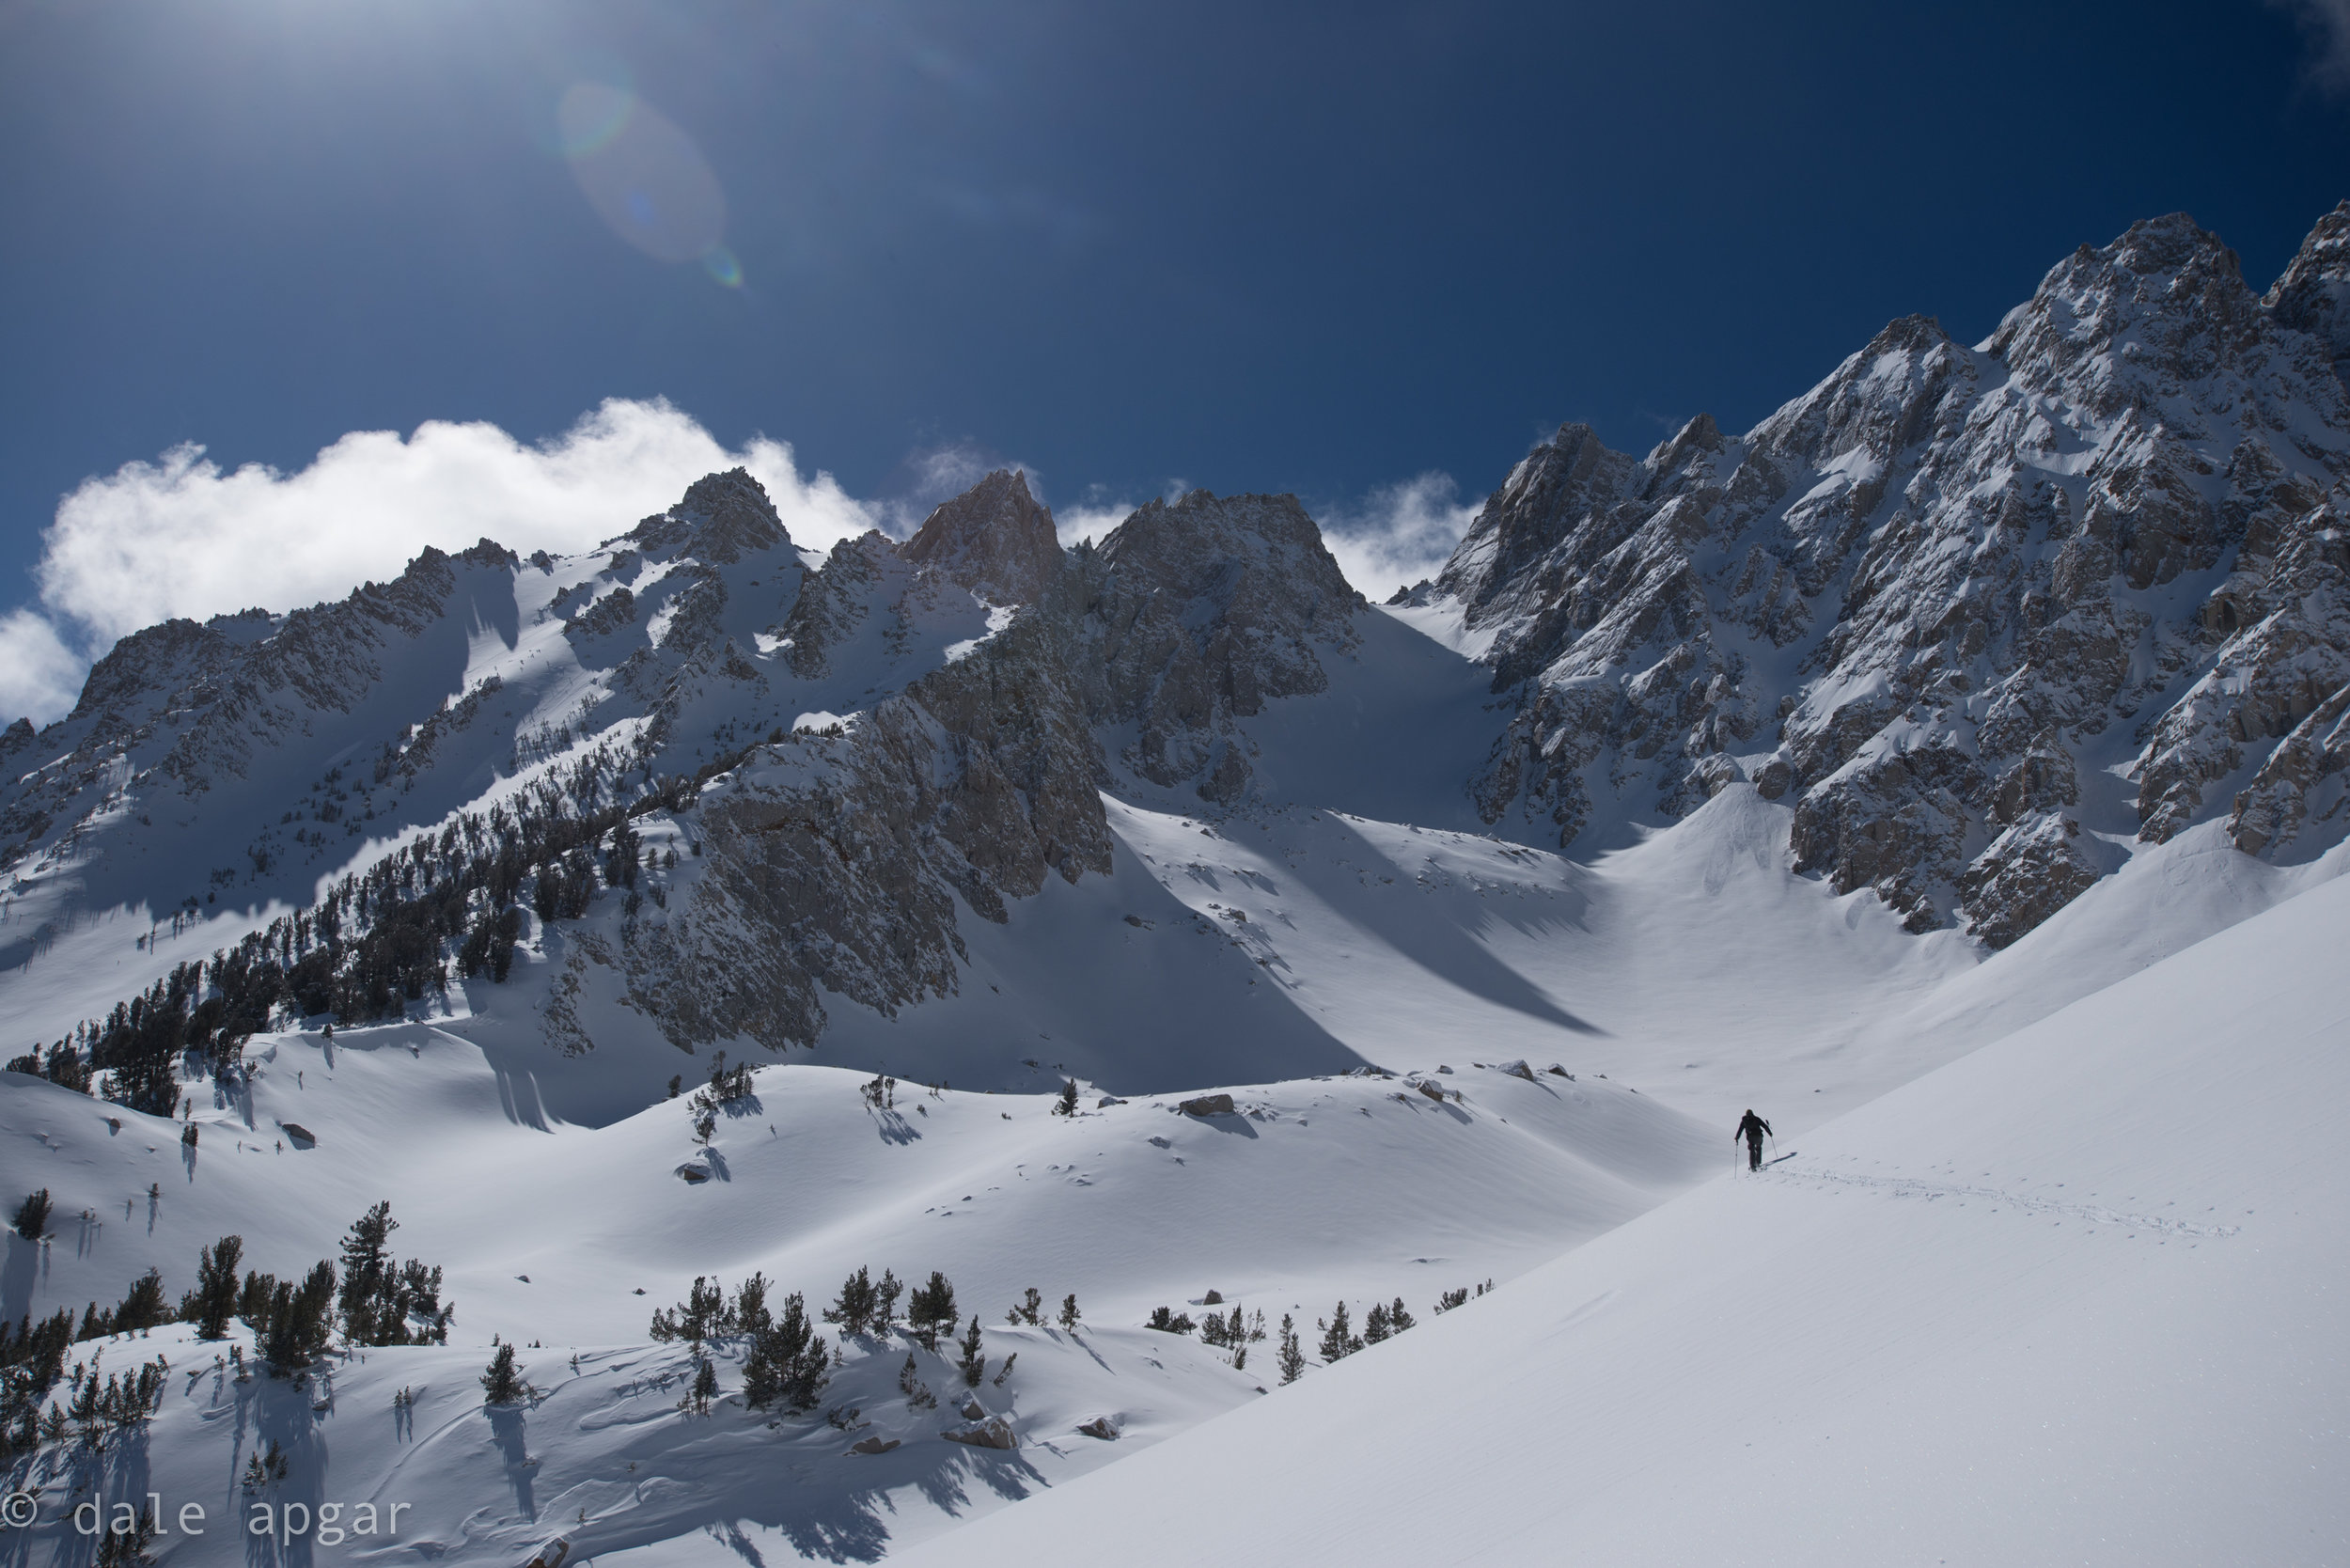 On the approach to Basin